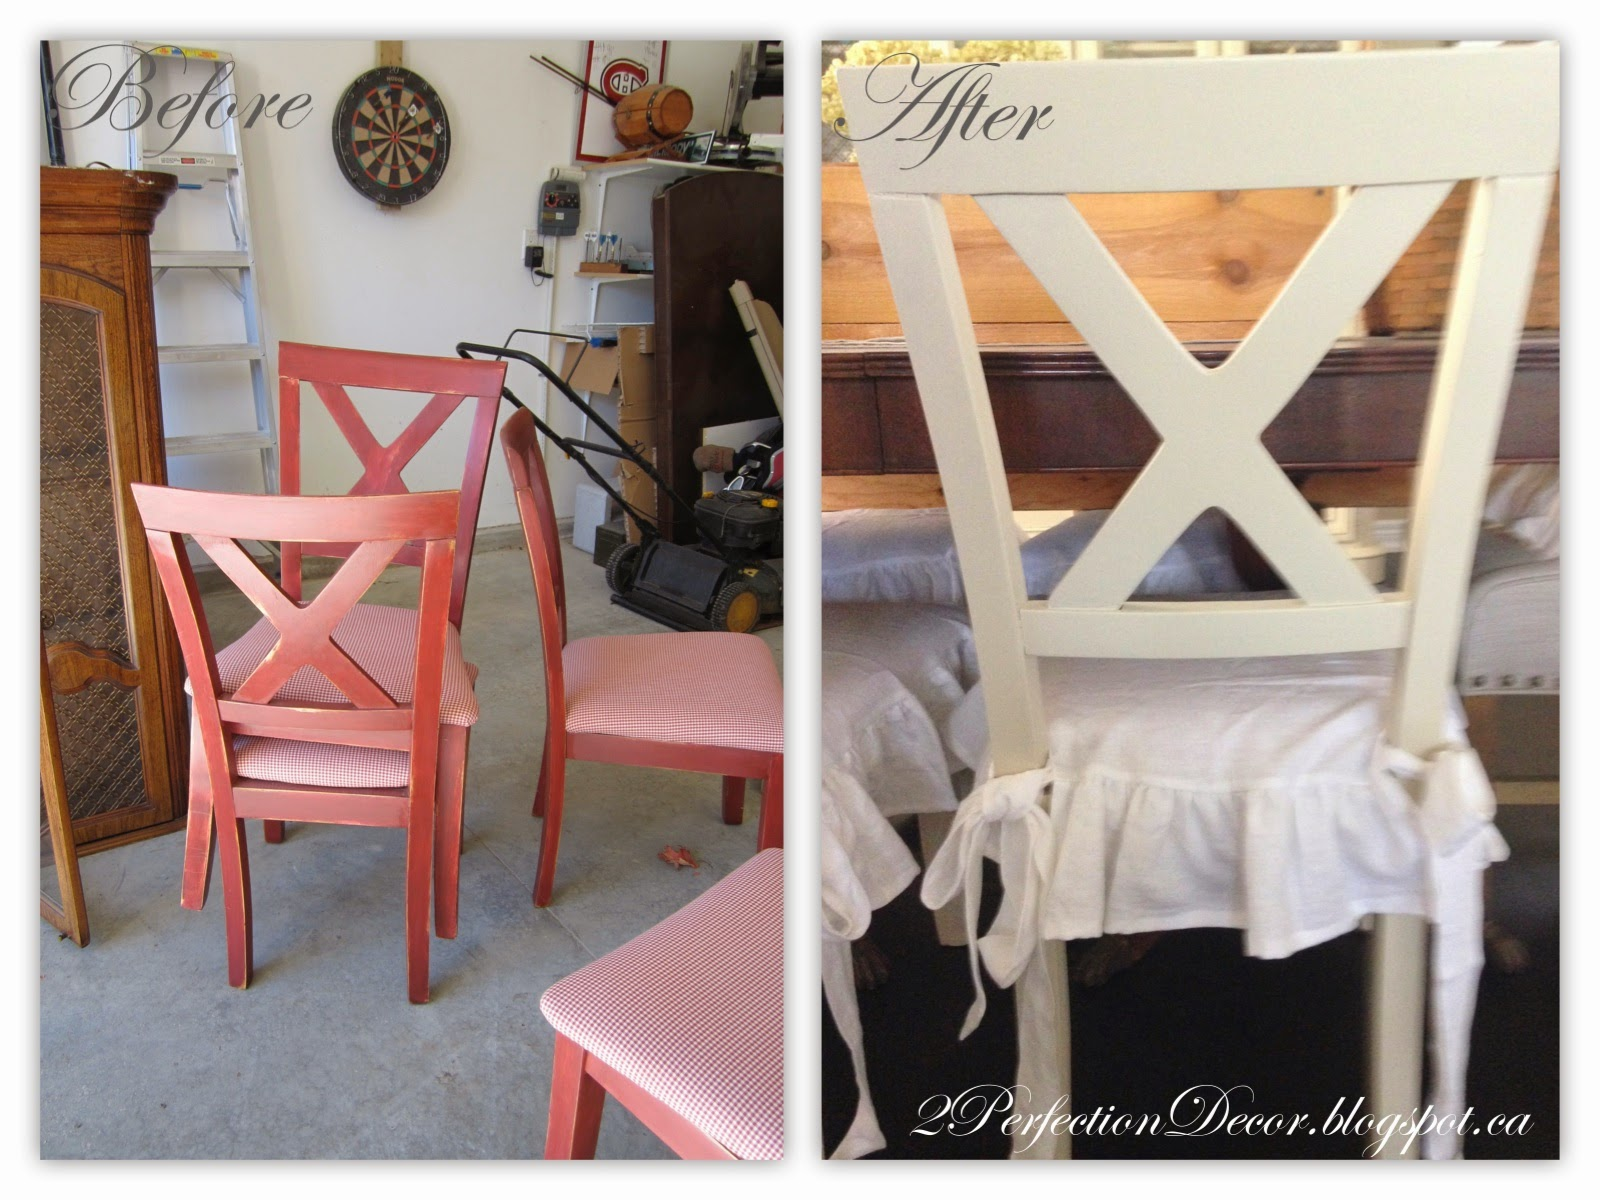 2Perfection Decor X back Dining chairs Makeover With white